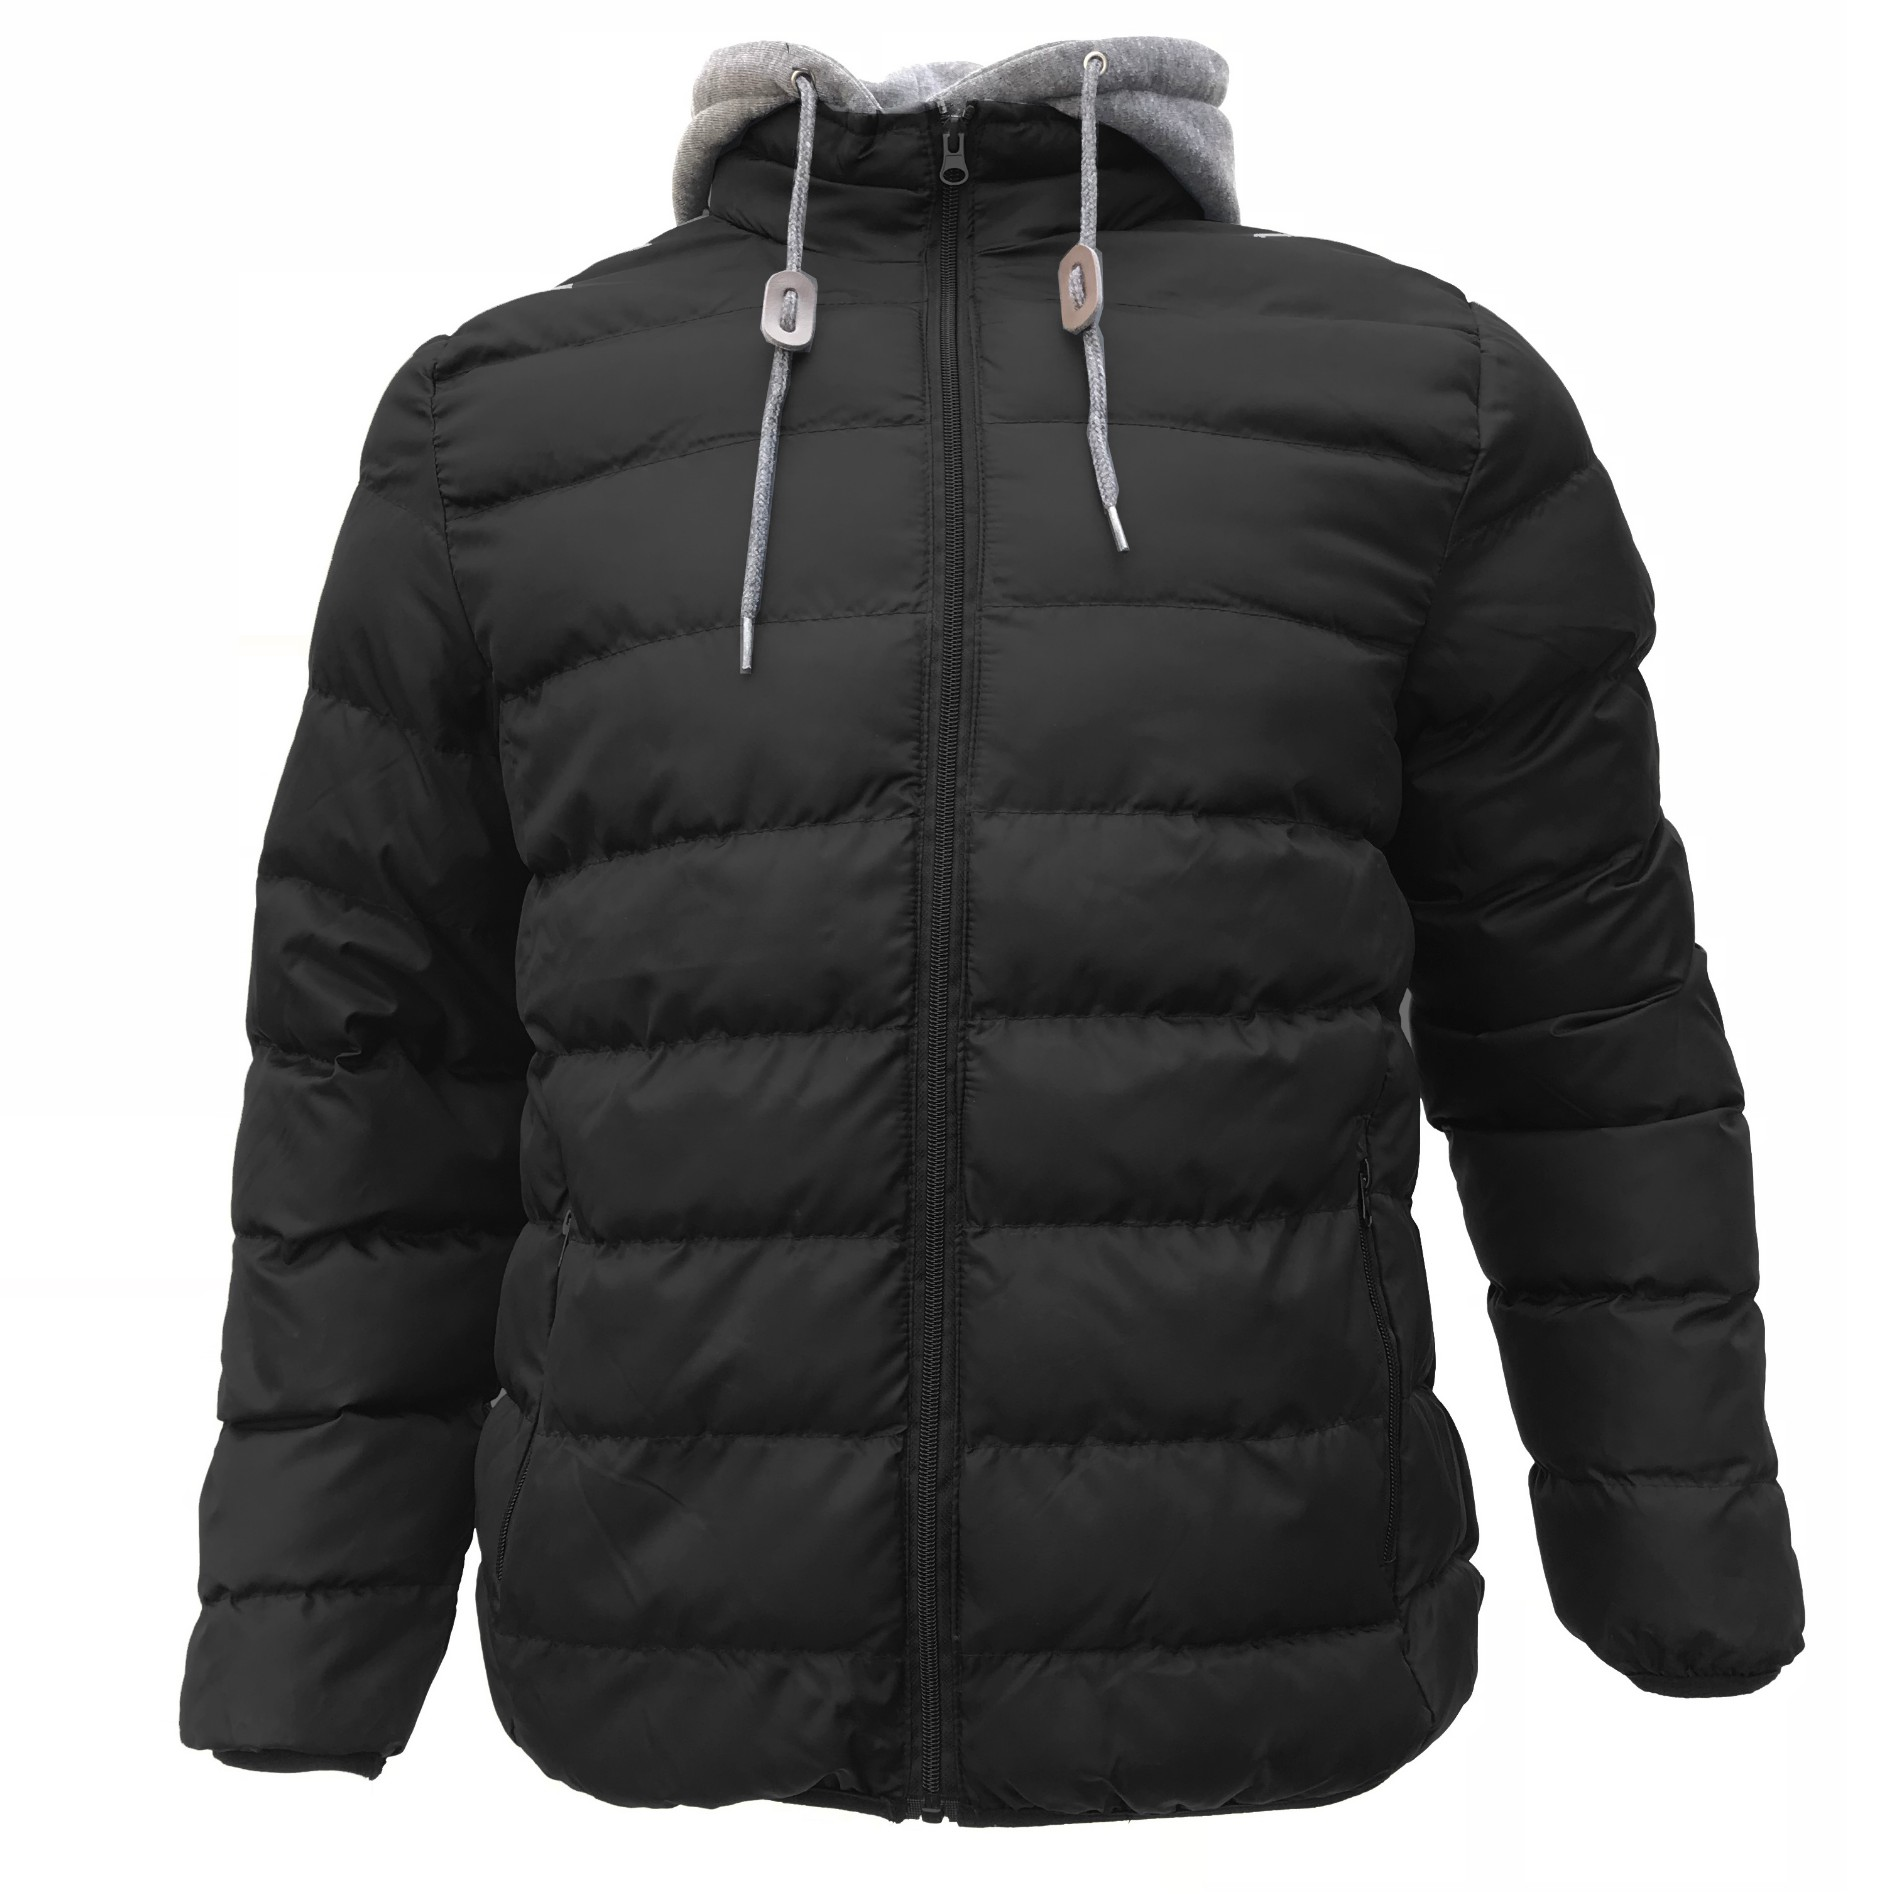 Men's High Quality Winter Coat Warm Padded Winter Jacket With Hood